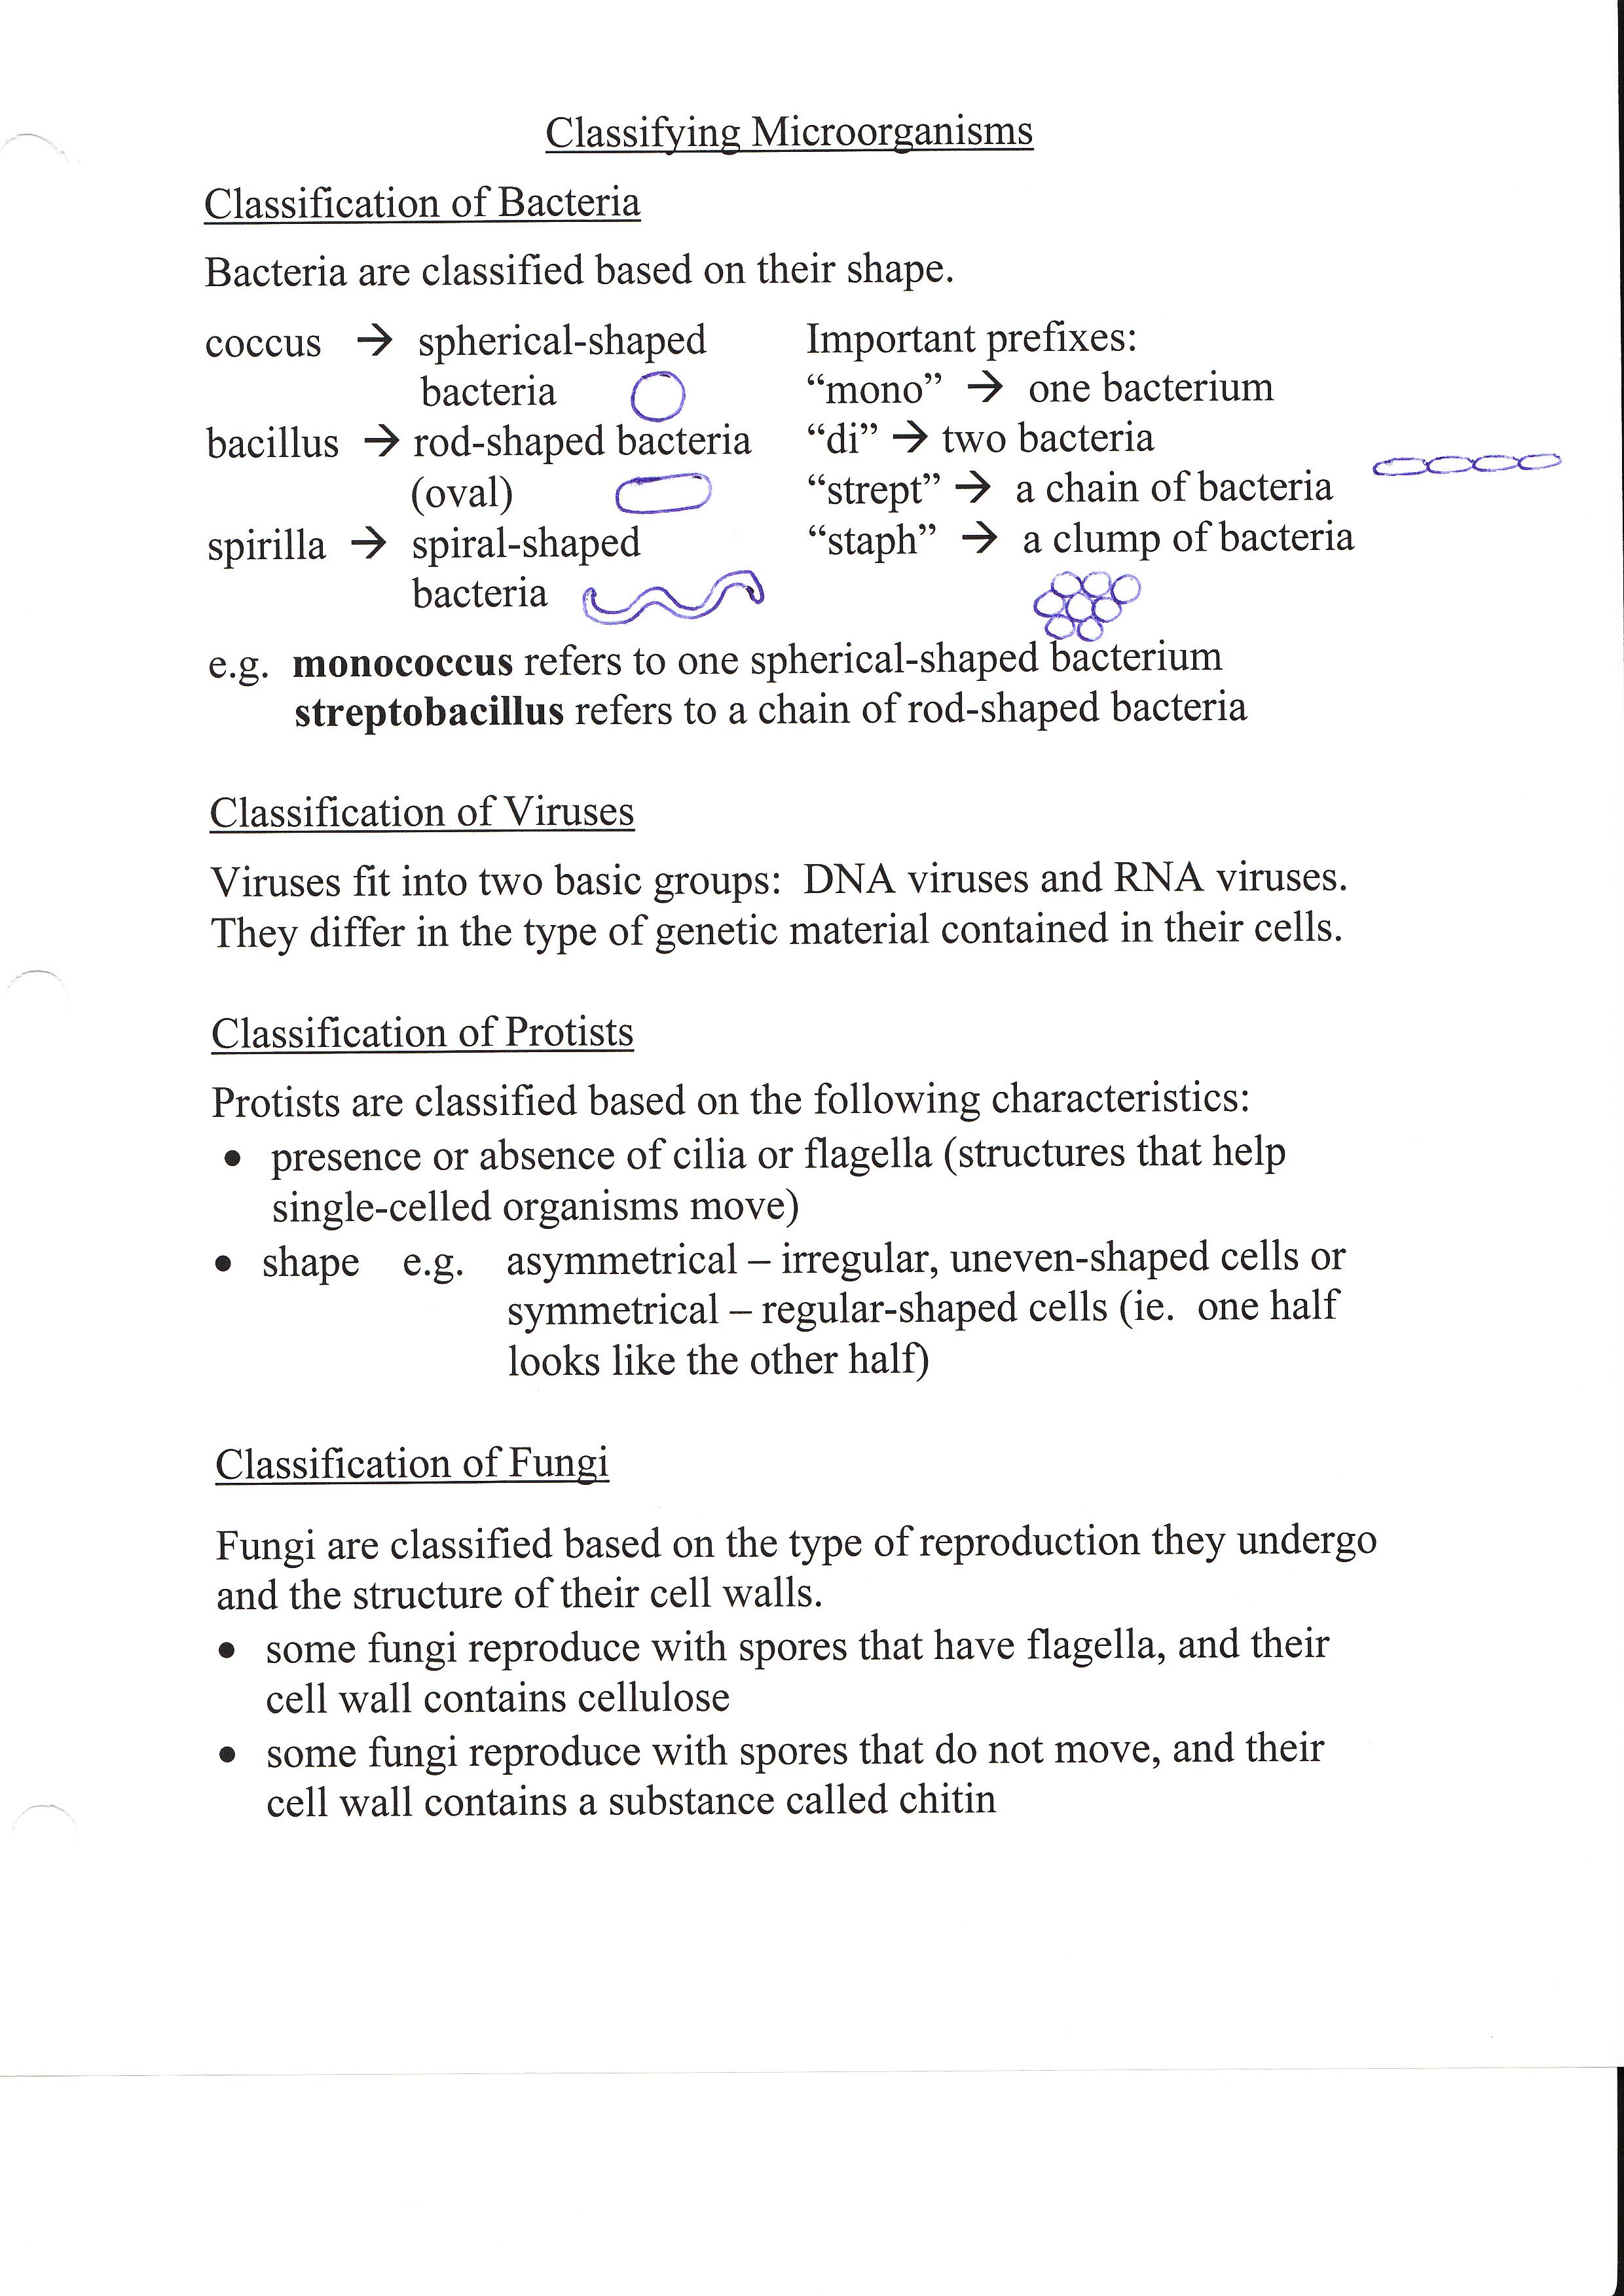 bancejscience SBI3C – Bacteria and Viruses Worksheet